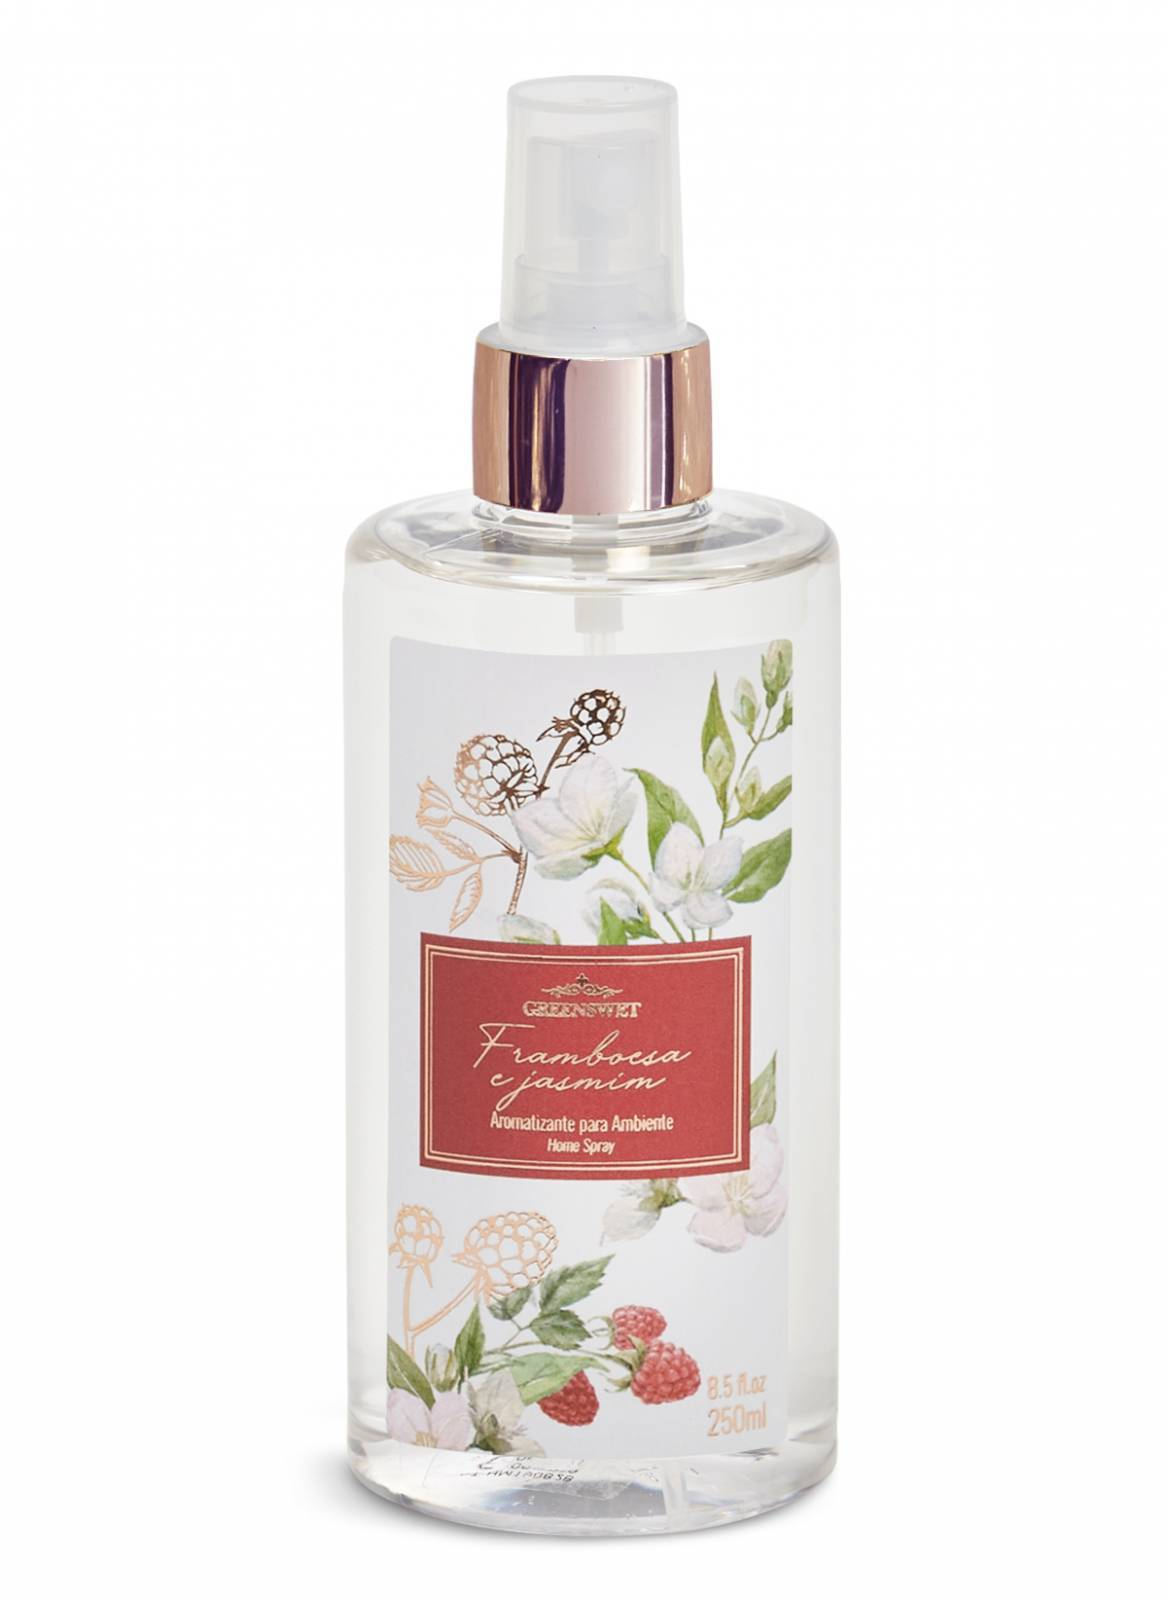 Home Spray 250ml Essência Framboesa e Jasmim - Greenswet Aromatizantes